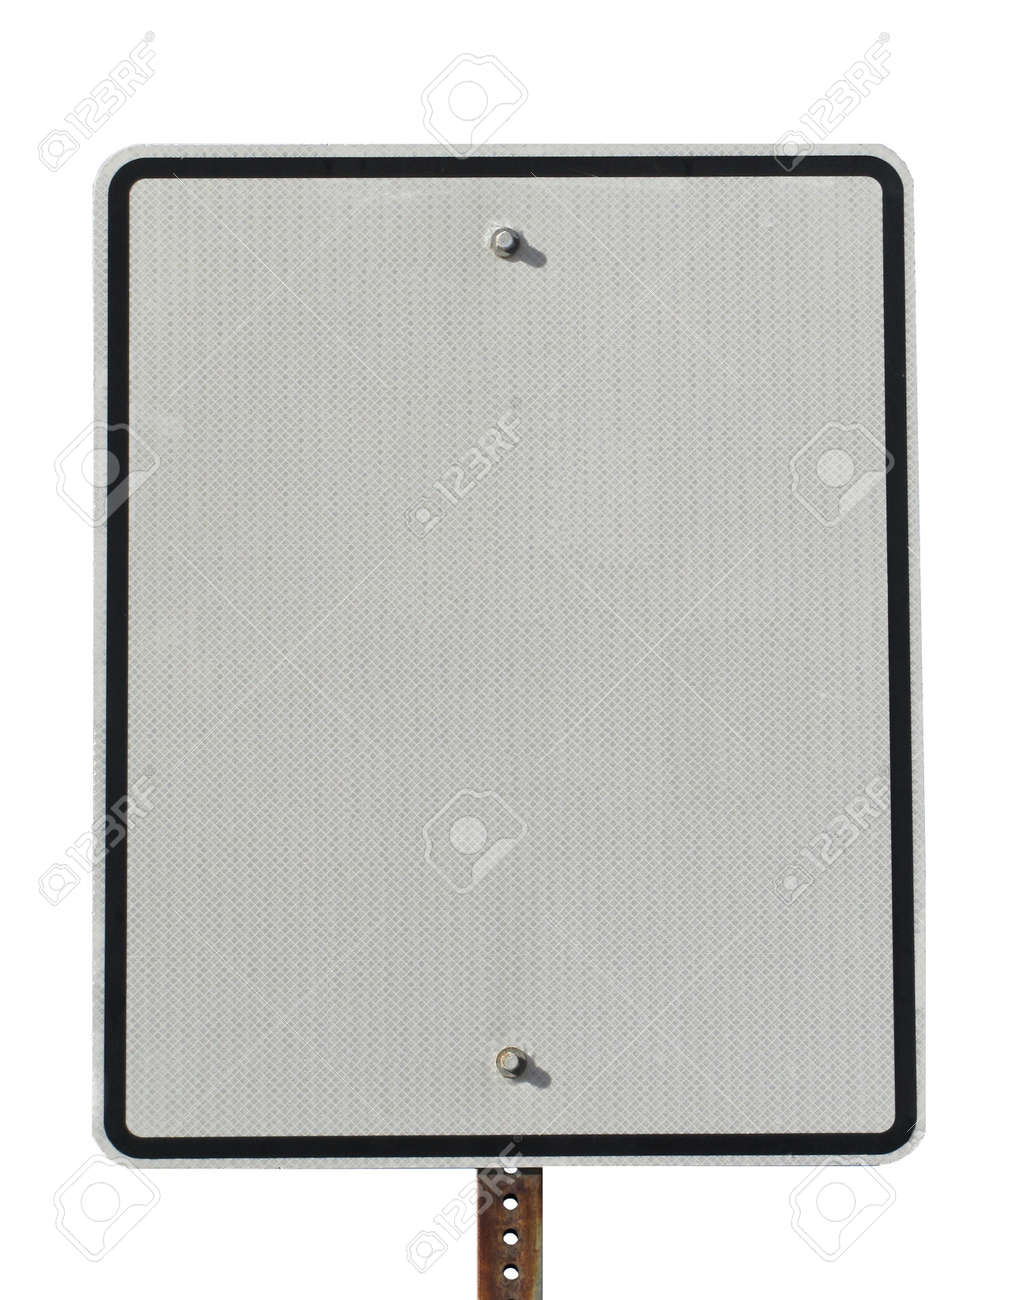 Actual white reflective street sign blank for copy space Stock Photo - 7316348